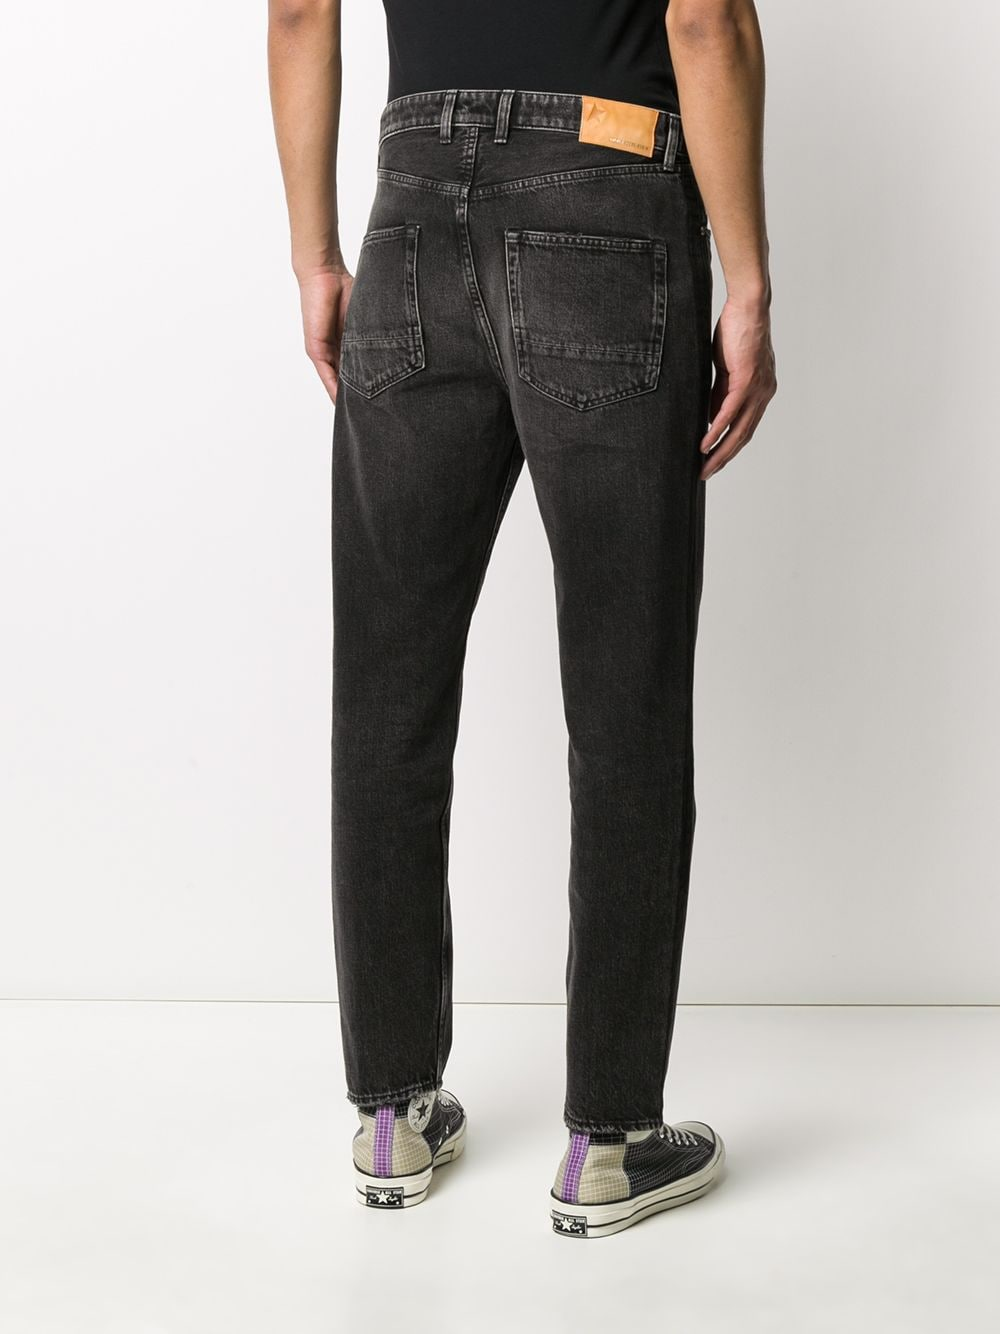 GOLDEN GOOSE DELUXE BRAND Jeans GOLDEN GOOSE | Jeans | G36MP509A1